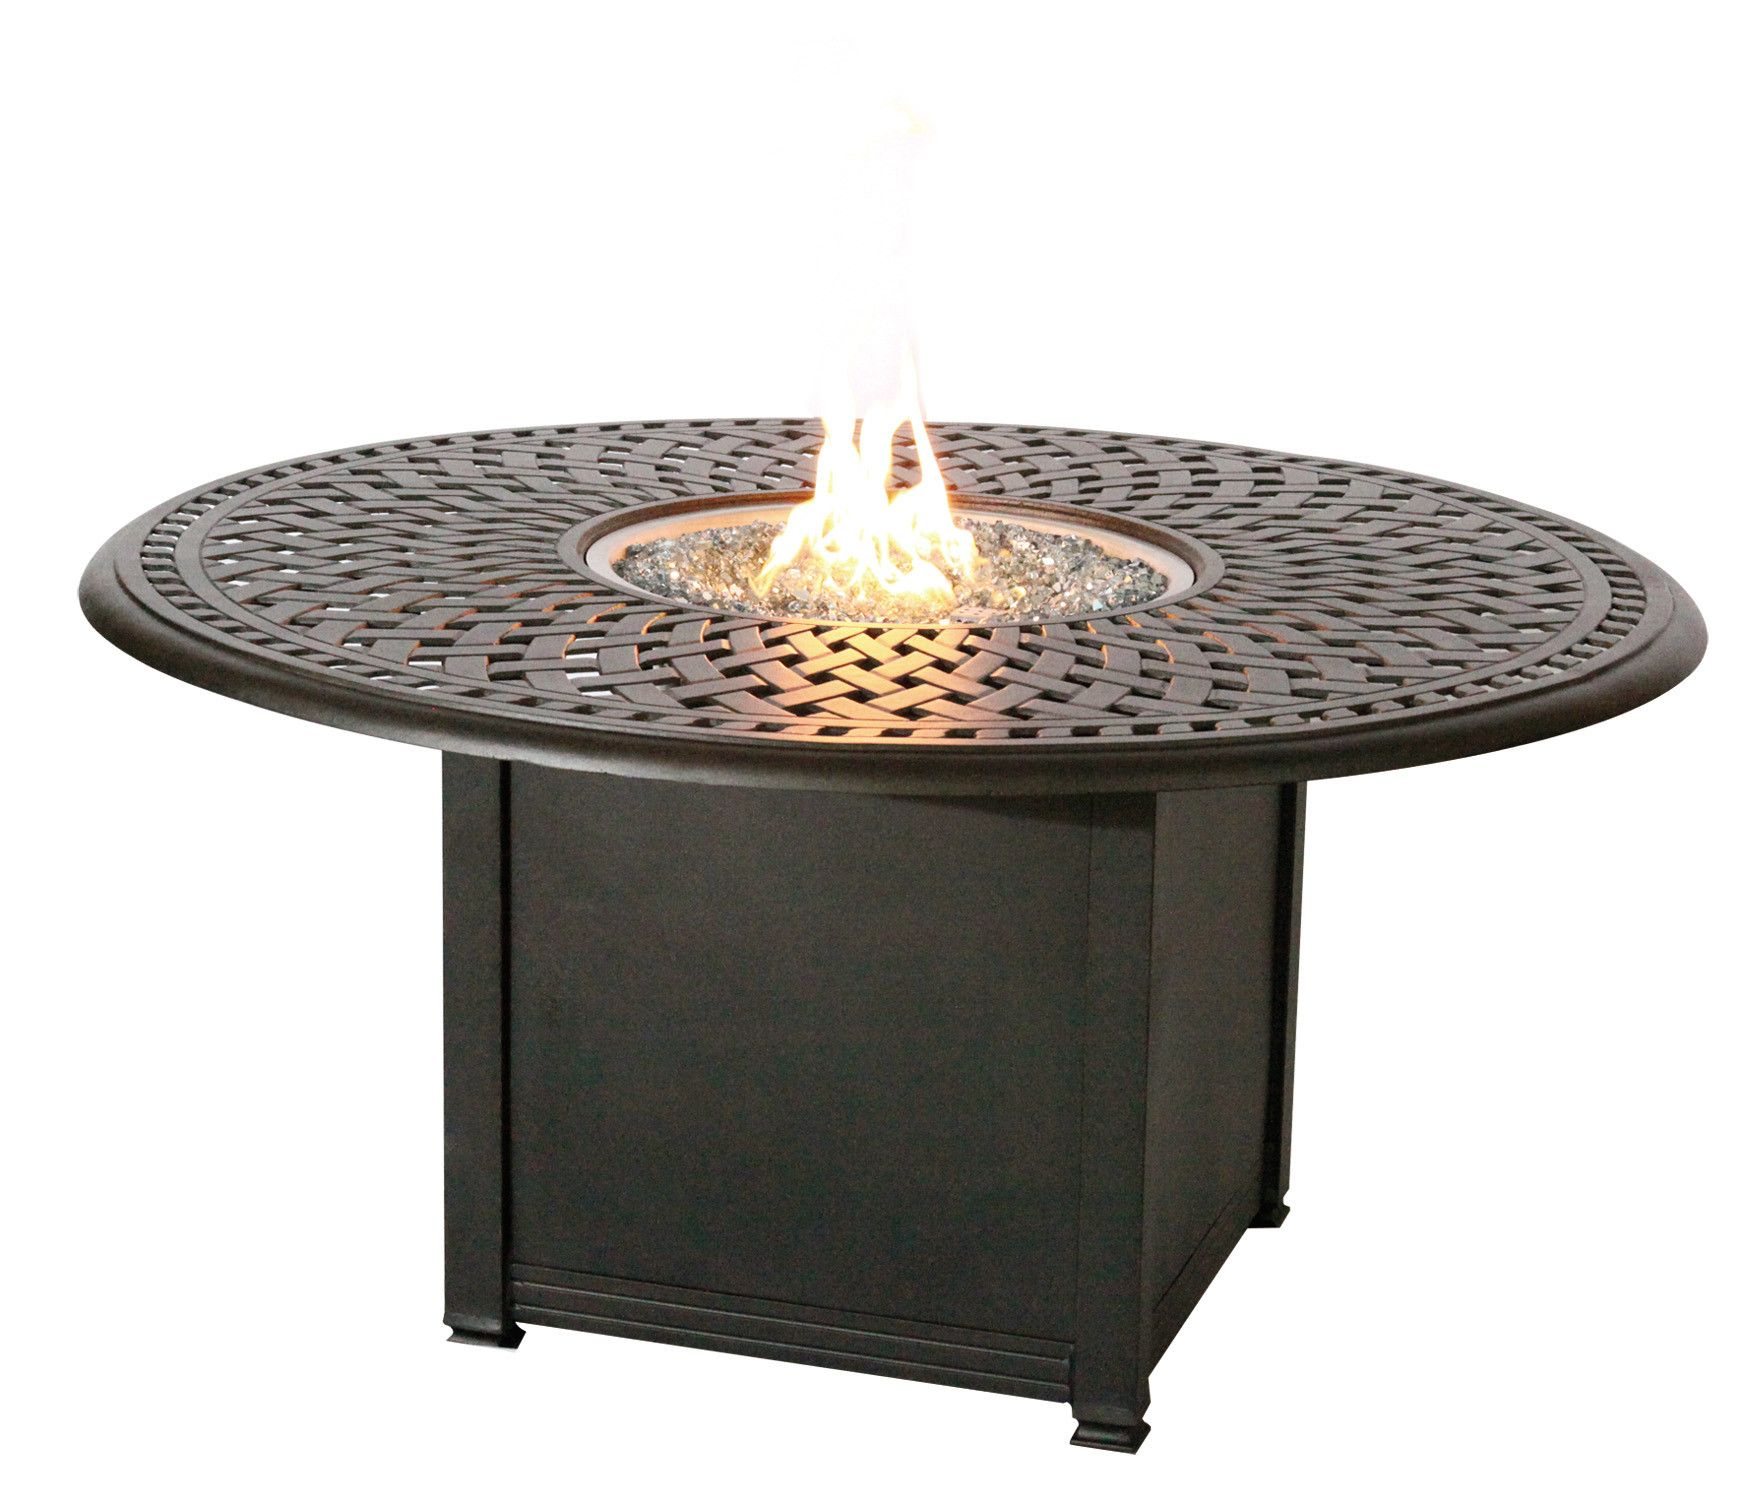 Features Fabric Furniture And Granite Tile Colors May Vary Due To Printing And Are Beyond The D Fire Pit Dining Set Propane Fire Pit Table Fire Pit Table